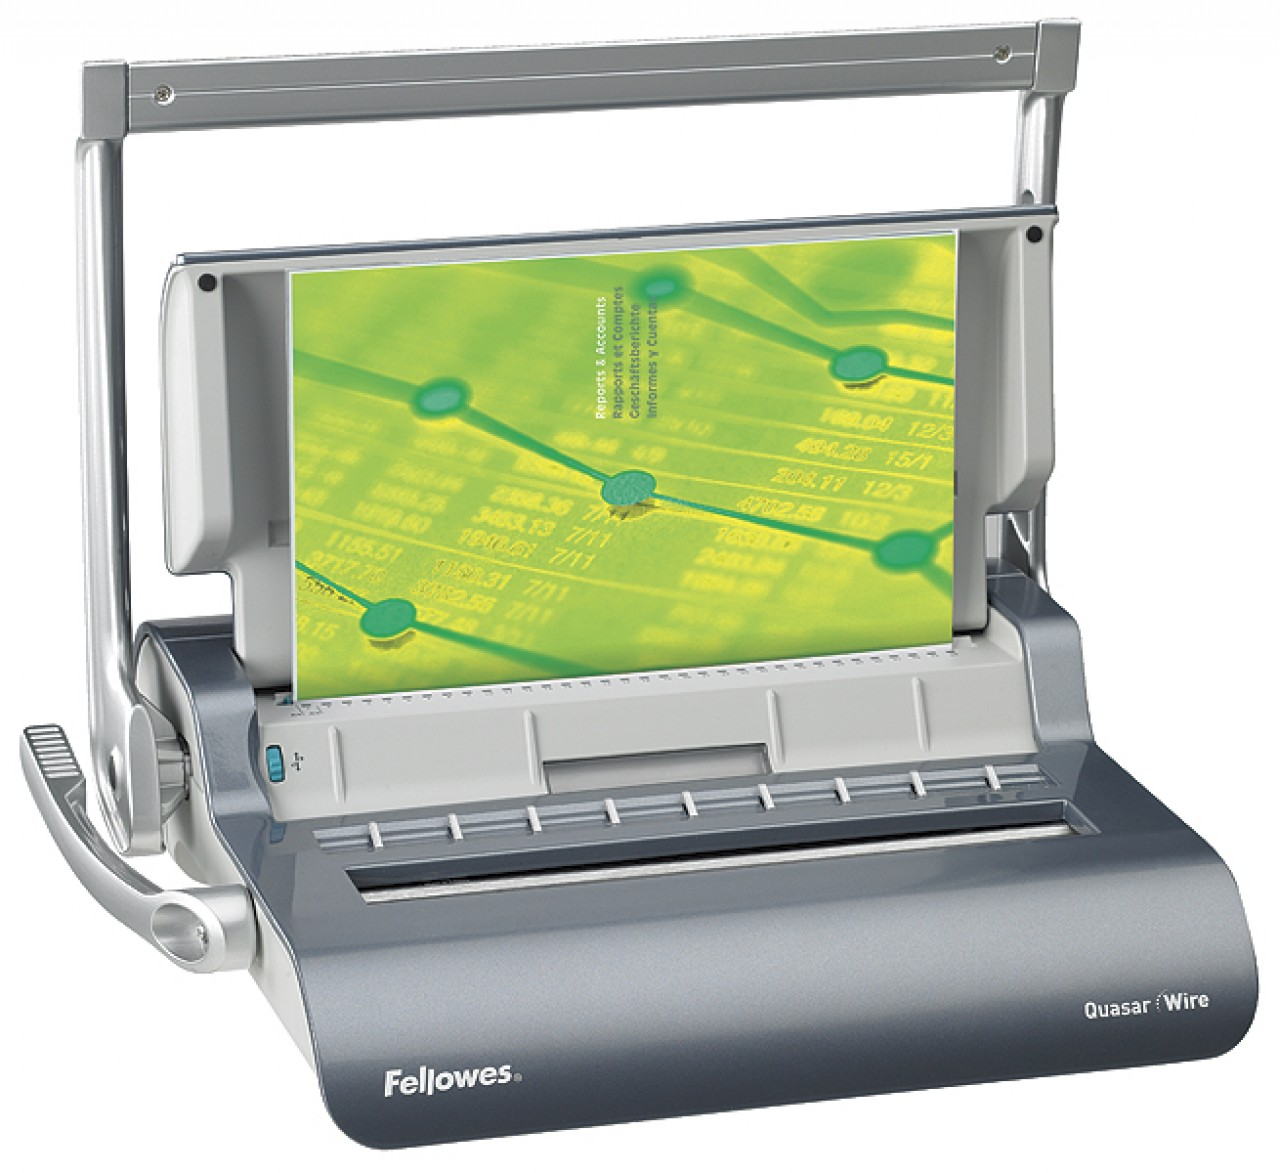 Draht Bindemaschine 3:1, Fellowes Quasar Wire 5224101